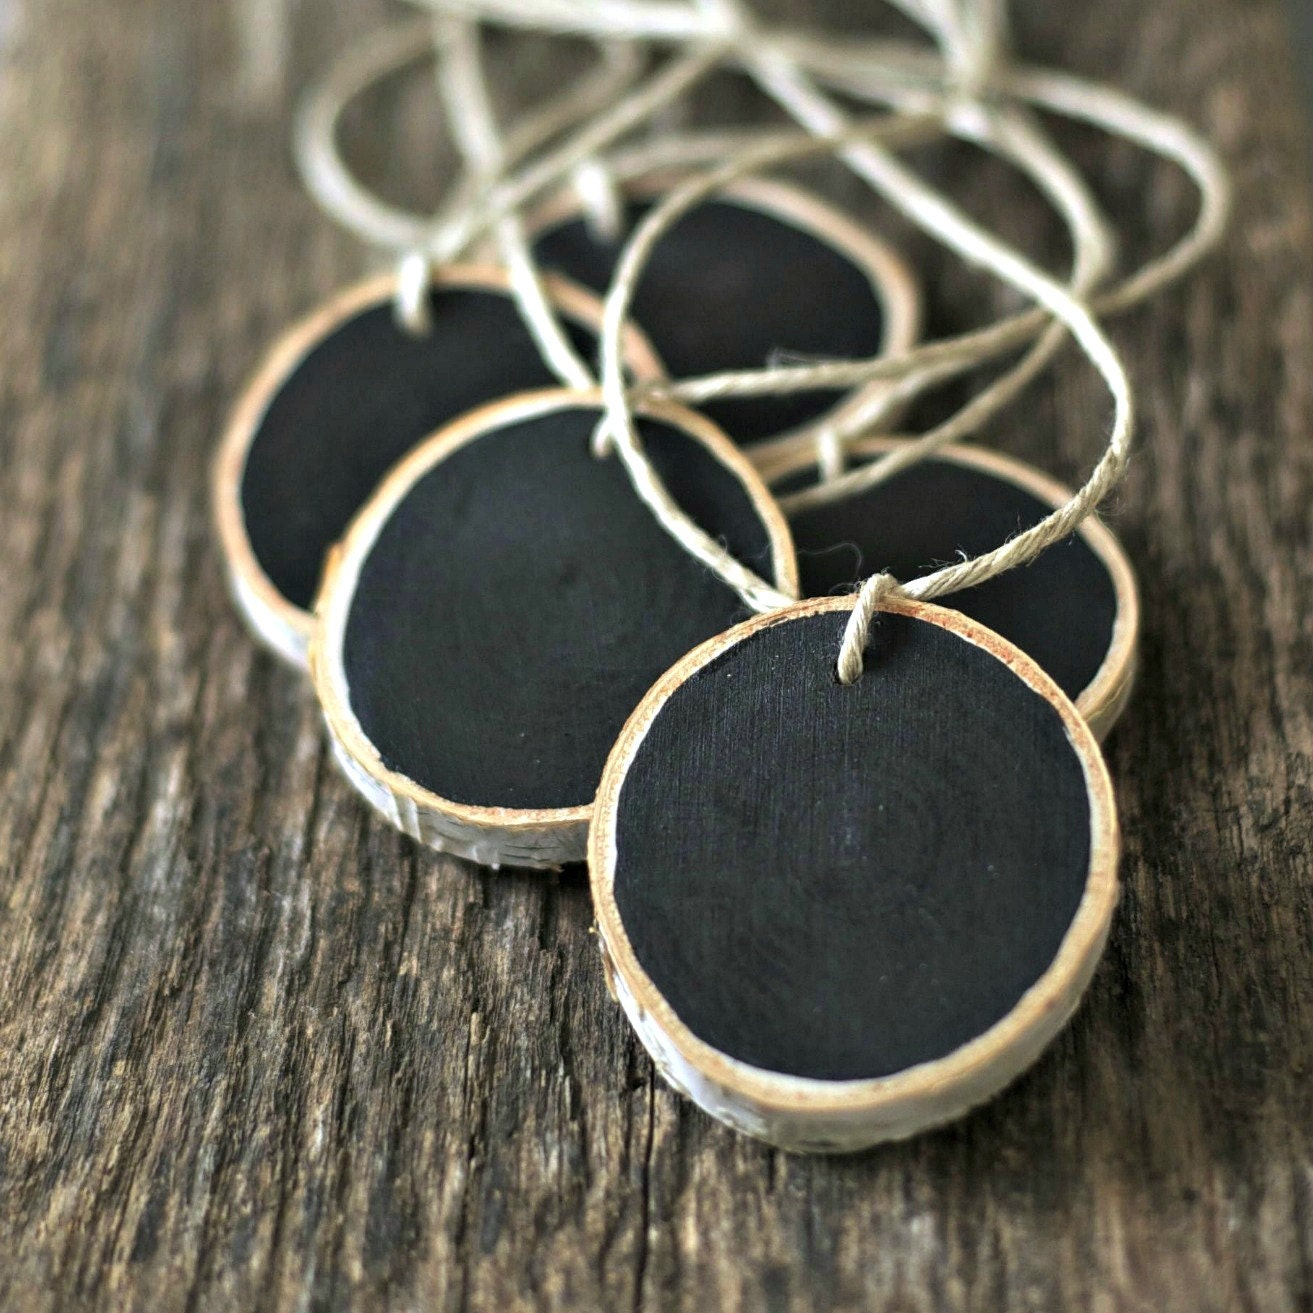 Chalkboard Tags - Tree Branch Wood Slice - Set of 5 - Rustic Wedding - Eco Friendly - Storage,Organization, Mason Jar Label, , Gift Tag